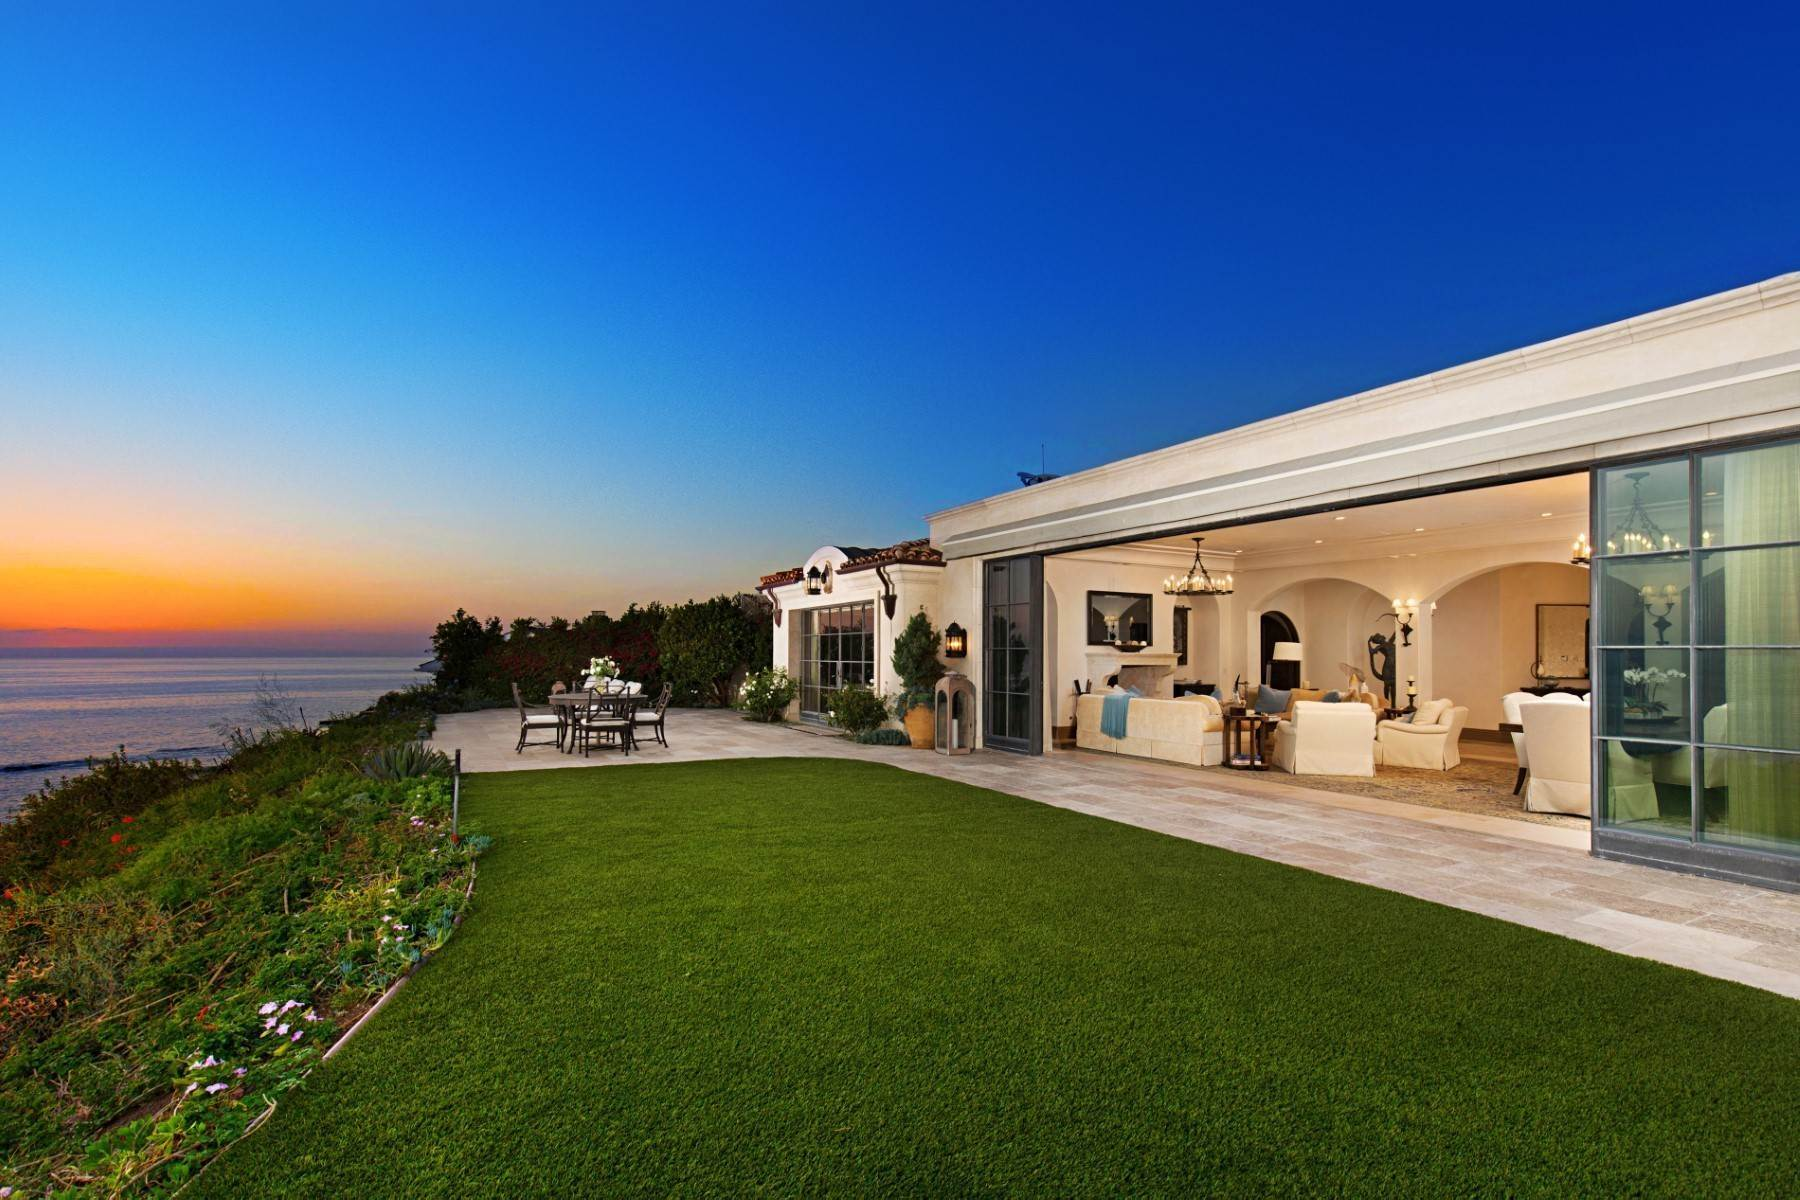 Single Family Homes for Sale at 57 Monarch Bay Drive, Dana Point, Ca, 92629 57 Monarch Bay Drive Dana Point, California 92629 United States